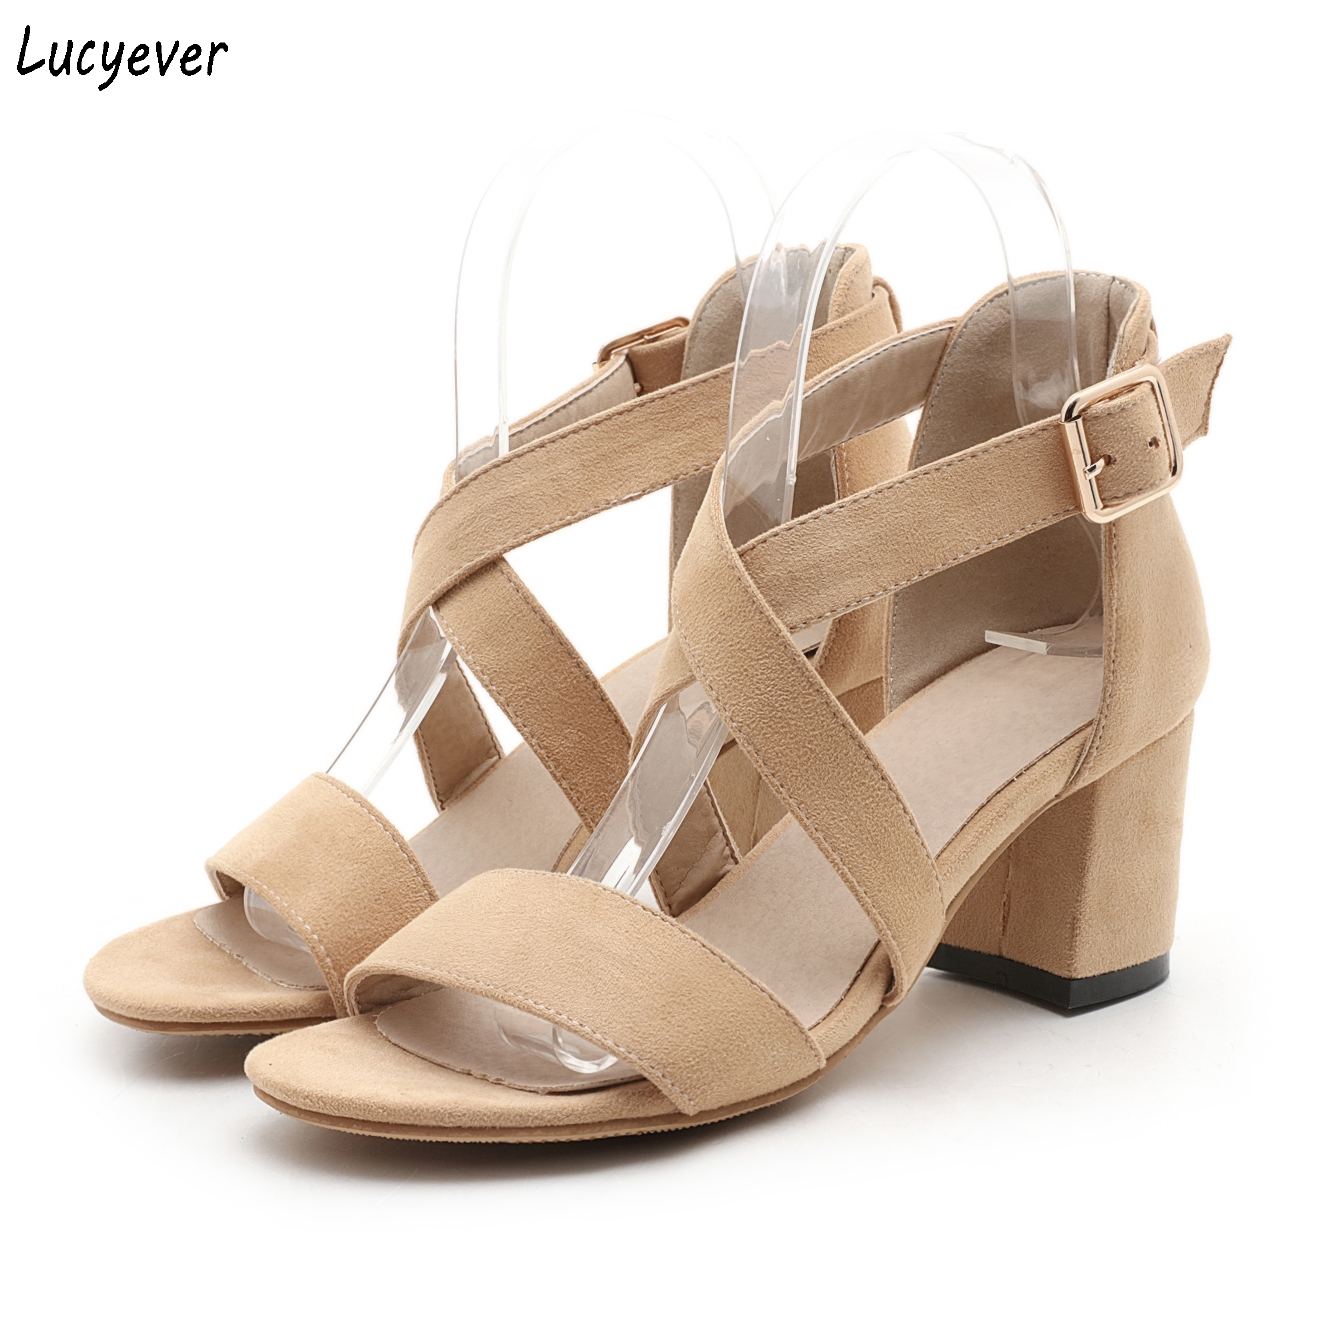 Lucyever Cross Strap Women Sandals 2017 Summer Gladiator Sandals Square High Heels Shoes Woman Buckles Nubuck Leather Pumps<br><br>Aliexpress